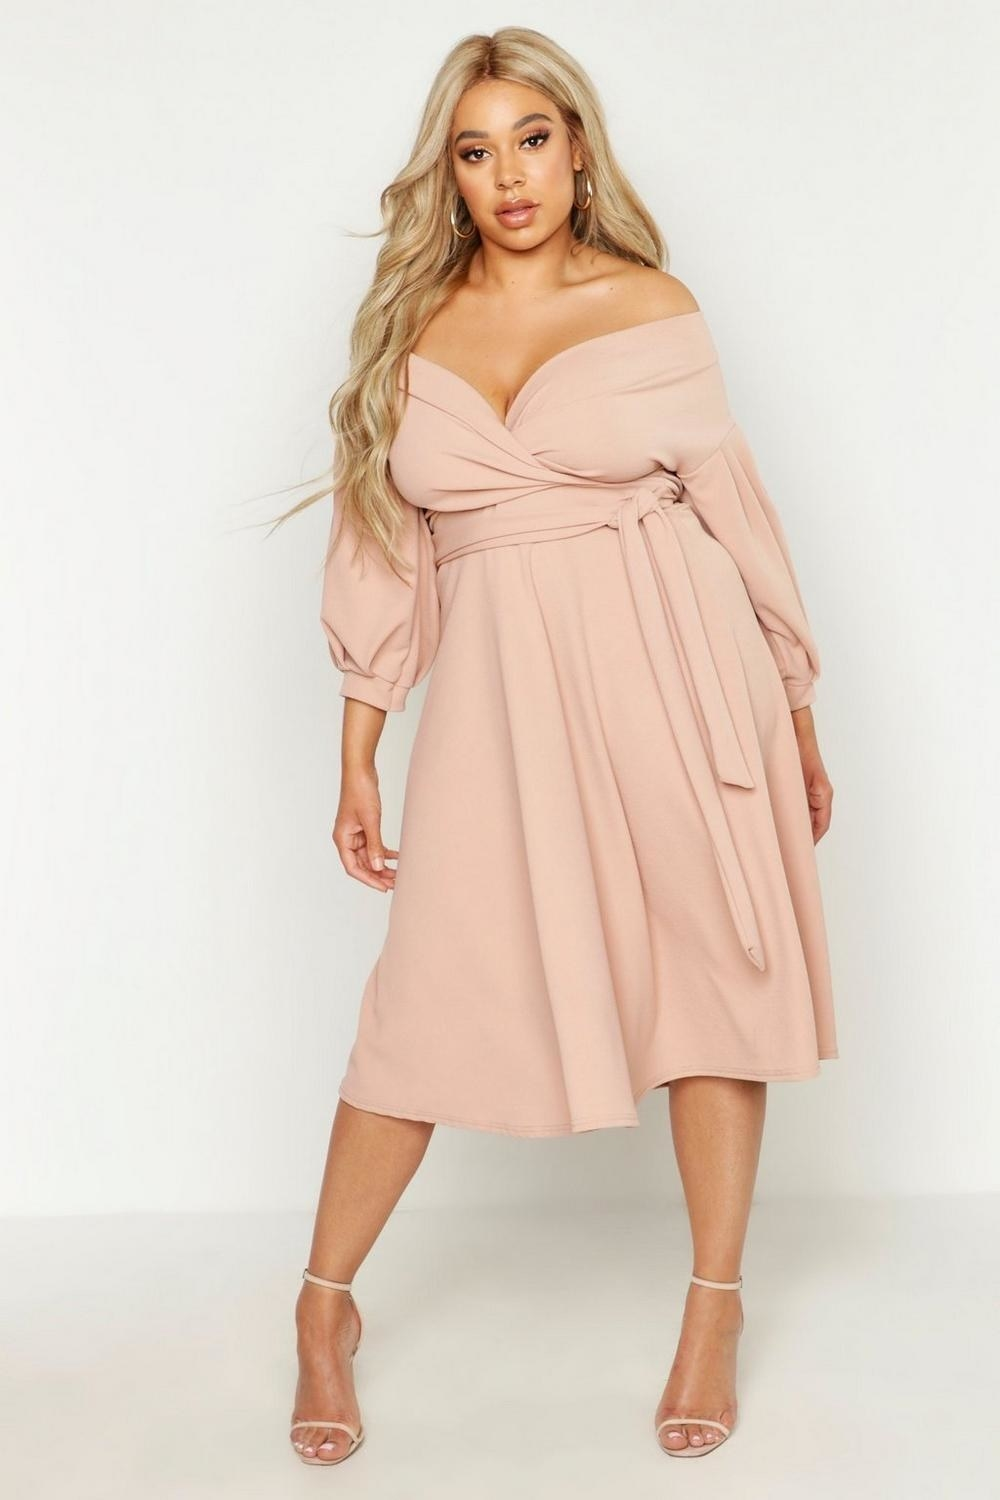 a model in the pale pink off the shoulder wrap dress